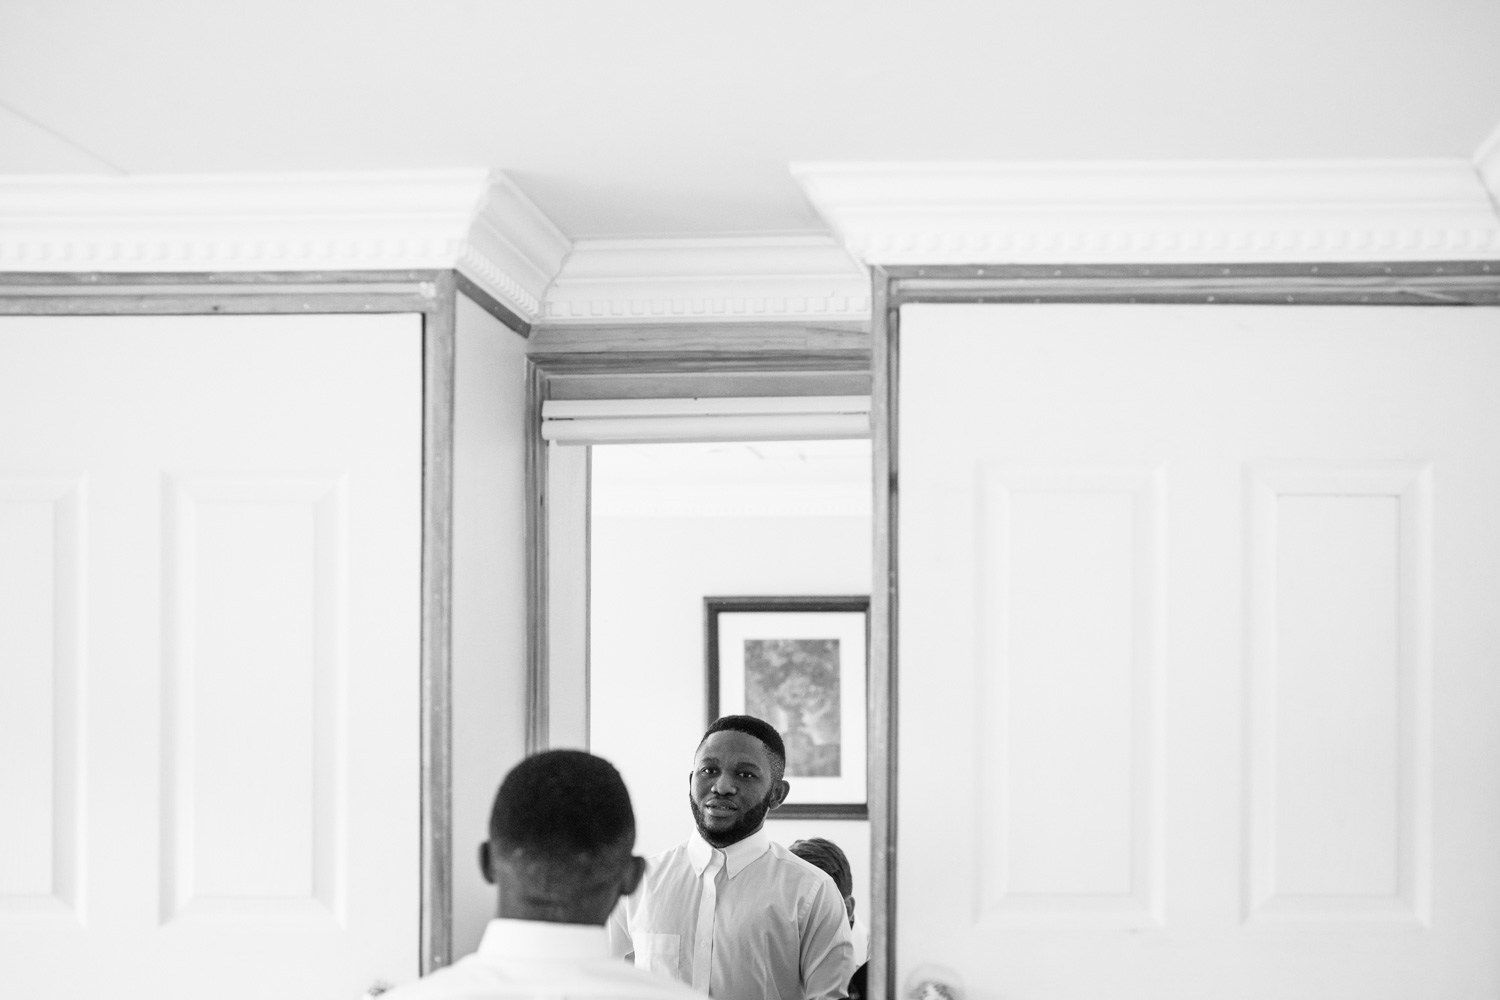 Groomsmen Looks In Mirror Getting Ready Before Wedding Ceremony At St Fort In Clarens